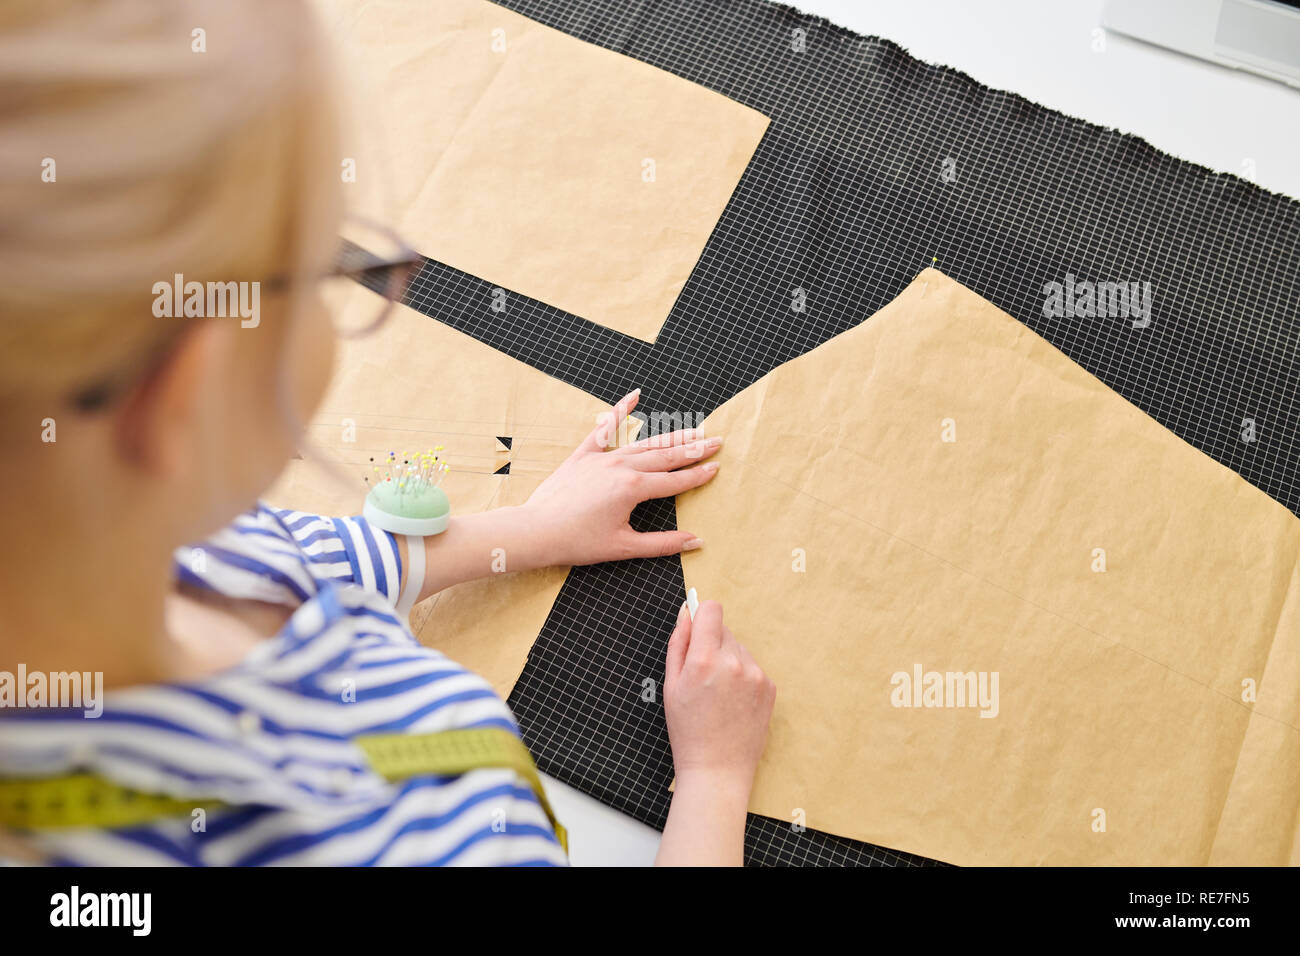 Young Fashion Designer Making White Chalk Markings Of Paper Patterns On Fabric Before Cutting Details For Future Jacket Or Costume Stock Photo Alamy